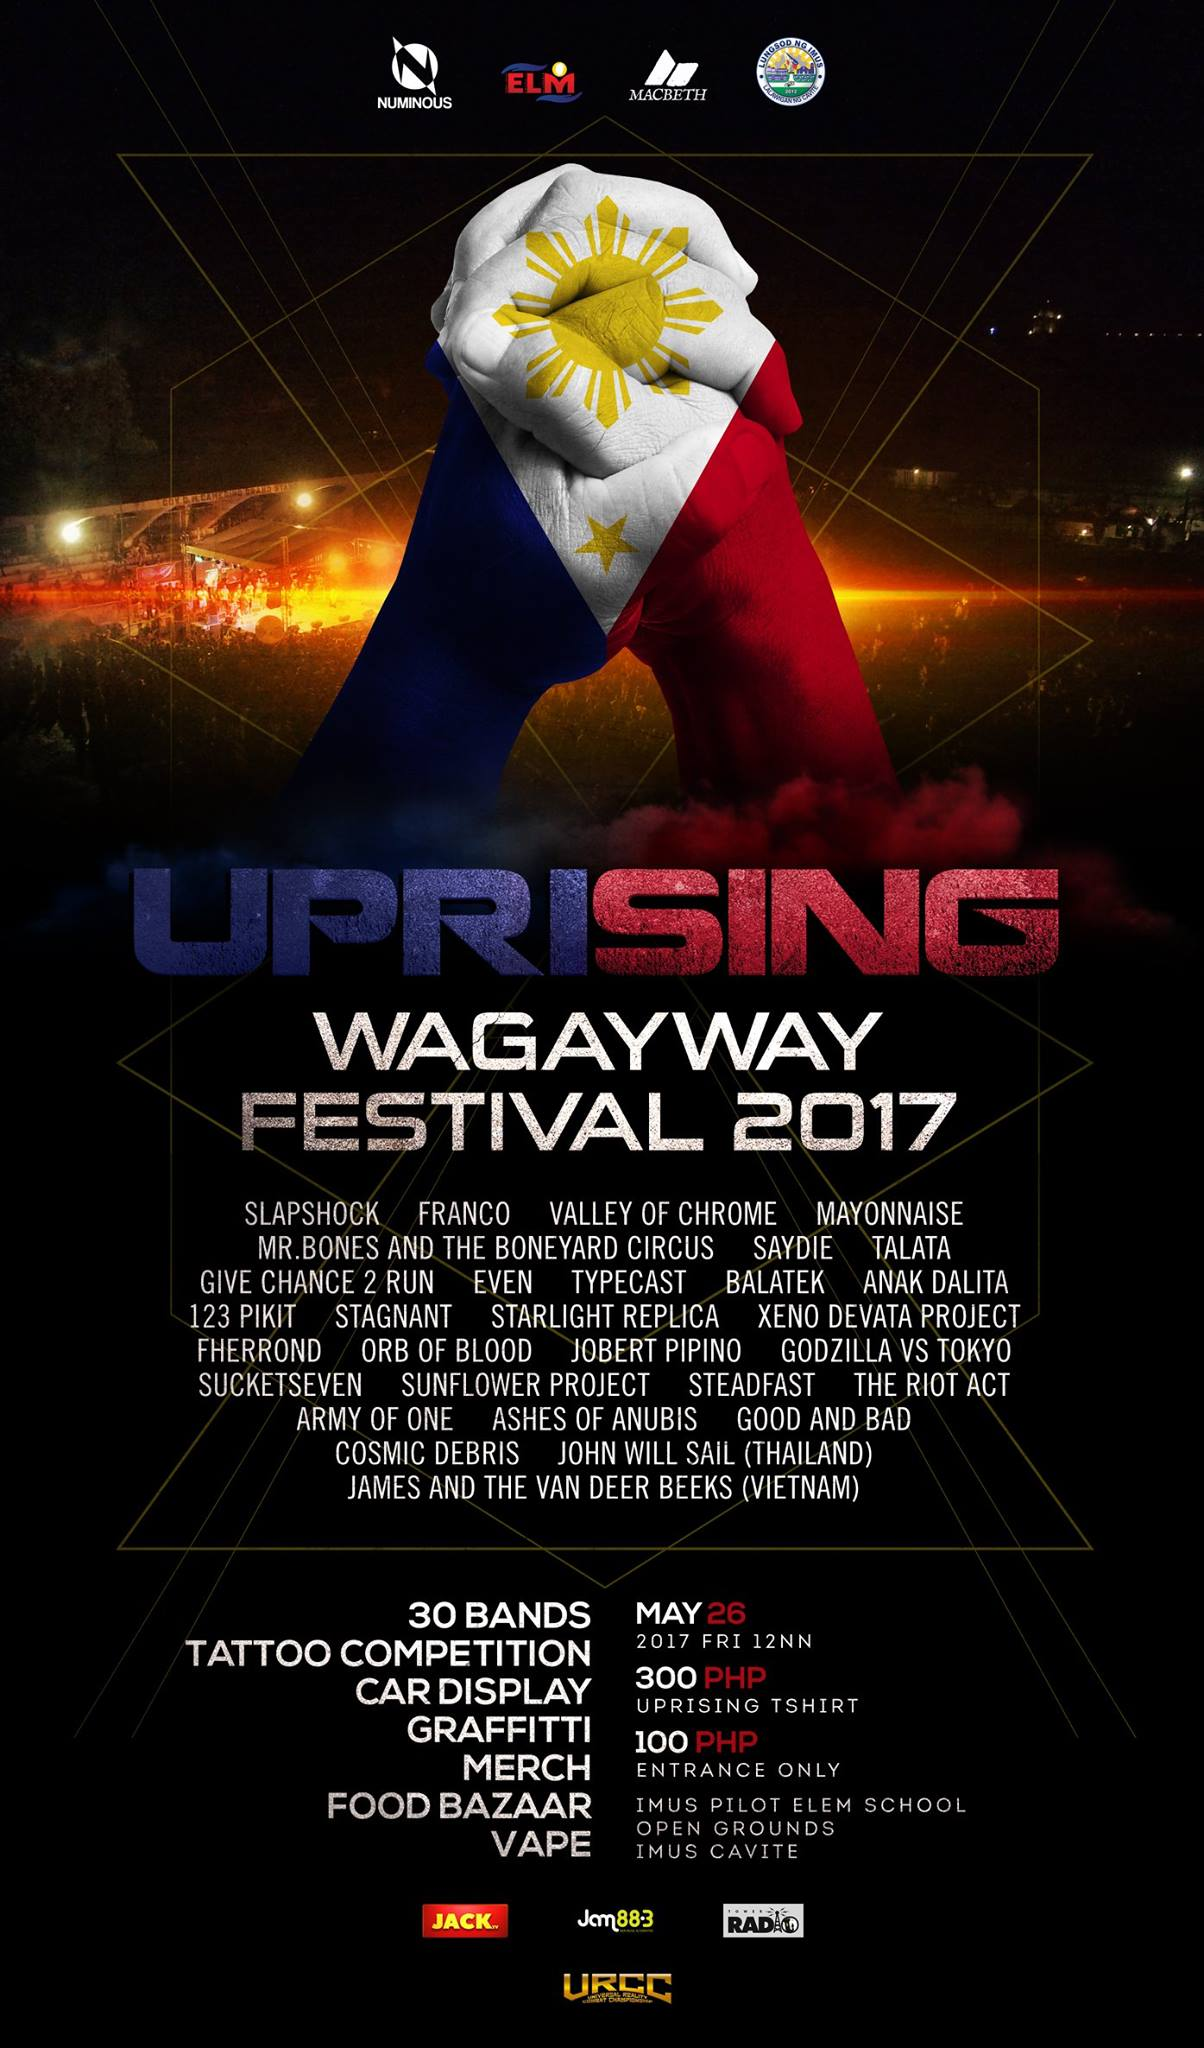 The Southern Project Page Liked · April 7 · Edited · The Uprising: Wagayway Festival.. The BIGGEST Musical Event in the SOUTH will be happpening on May 26, 2017, 12N for 100 pesos, at The Imus Pilot Elementary School Open Grounds, Imus Cavite. Army Of One Anak Dalita The Riot Act and Fherrond will be performing with other great Filipino Bands! — with Johnny Villame, Romeo Regaliza Pascual, Siopao Lucero Paredes, Mike Twain, Reachie de Leon, Jehu Aquino, Em Somera, Neil Aldrin, Joanas Pineda, Ian Delos Santos, Joboss Cambodia, Johnny Riot, Ernezto Geluz, Christiana Mongaya and Bryan Pernis.